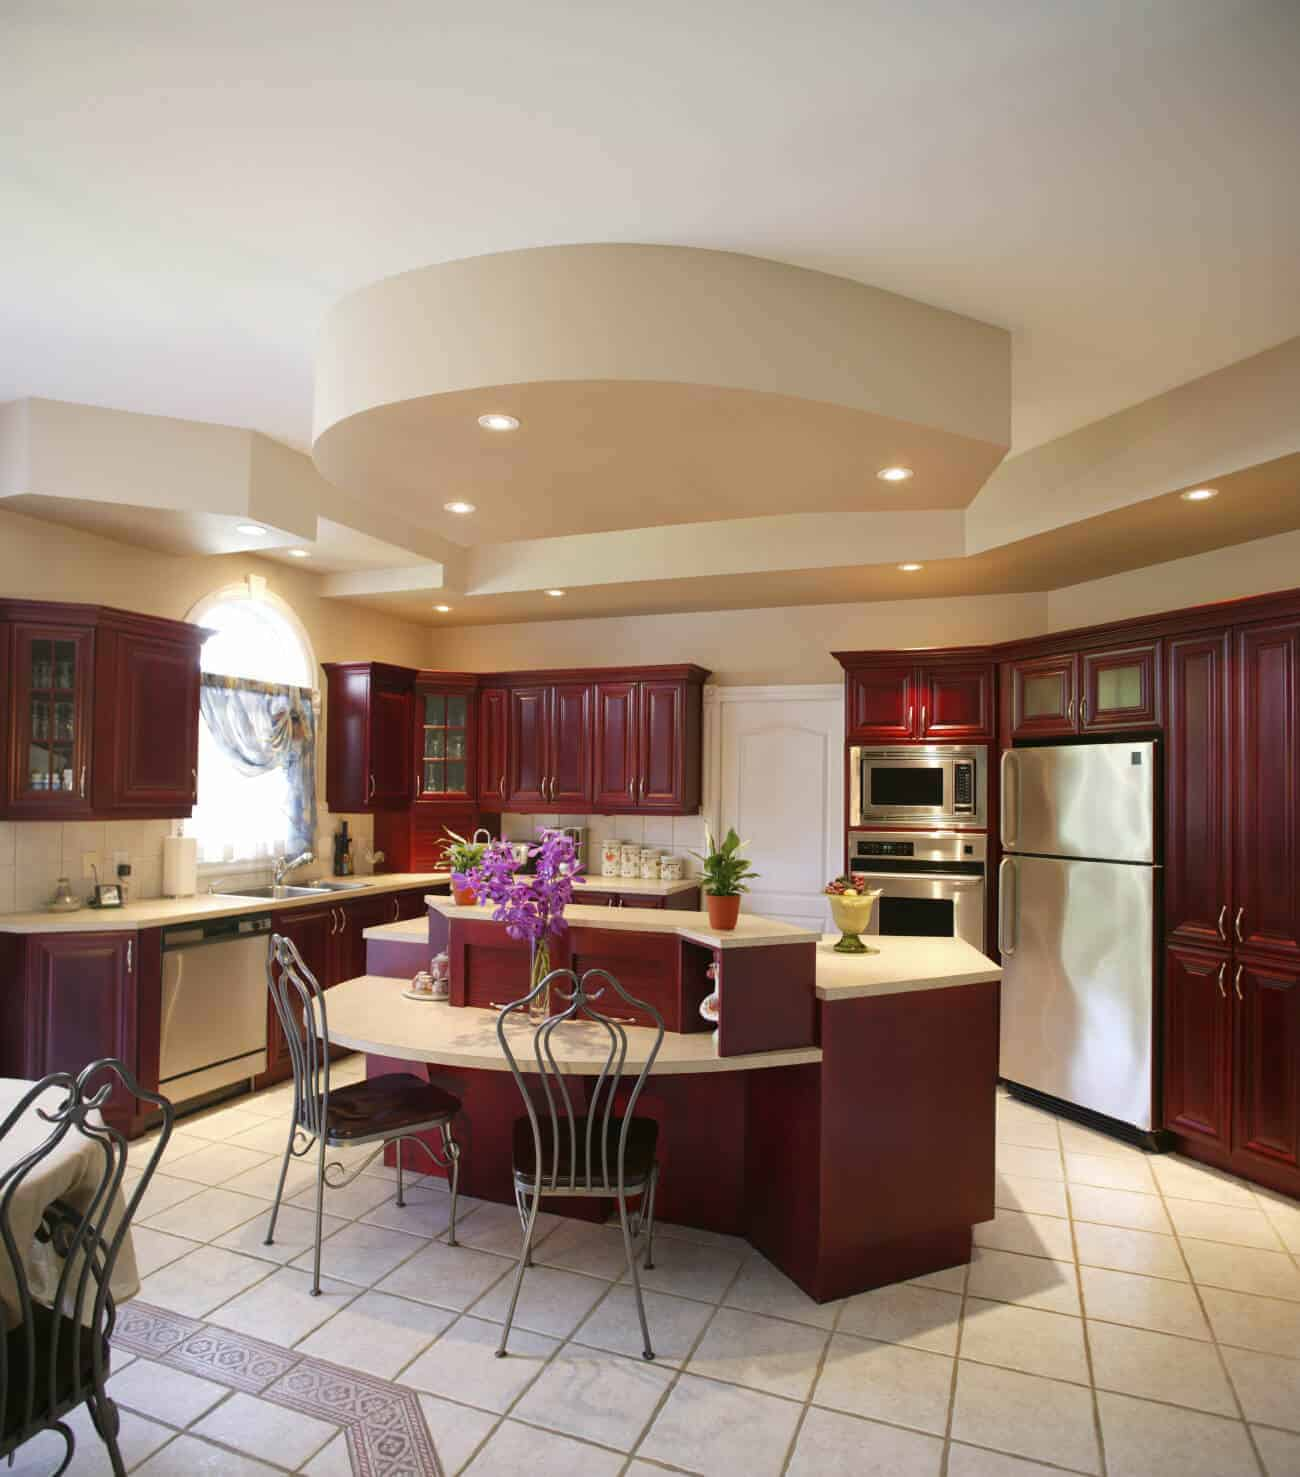 This kitchen features redwood cabinetry and beige tile flooring and countertops. This kitchen lit by recessed ceiling lights.